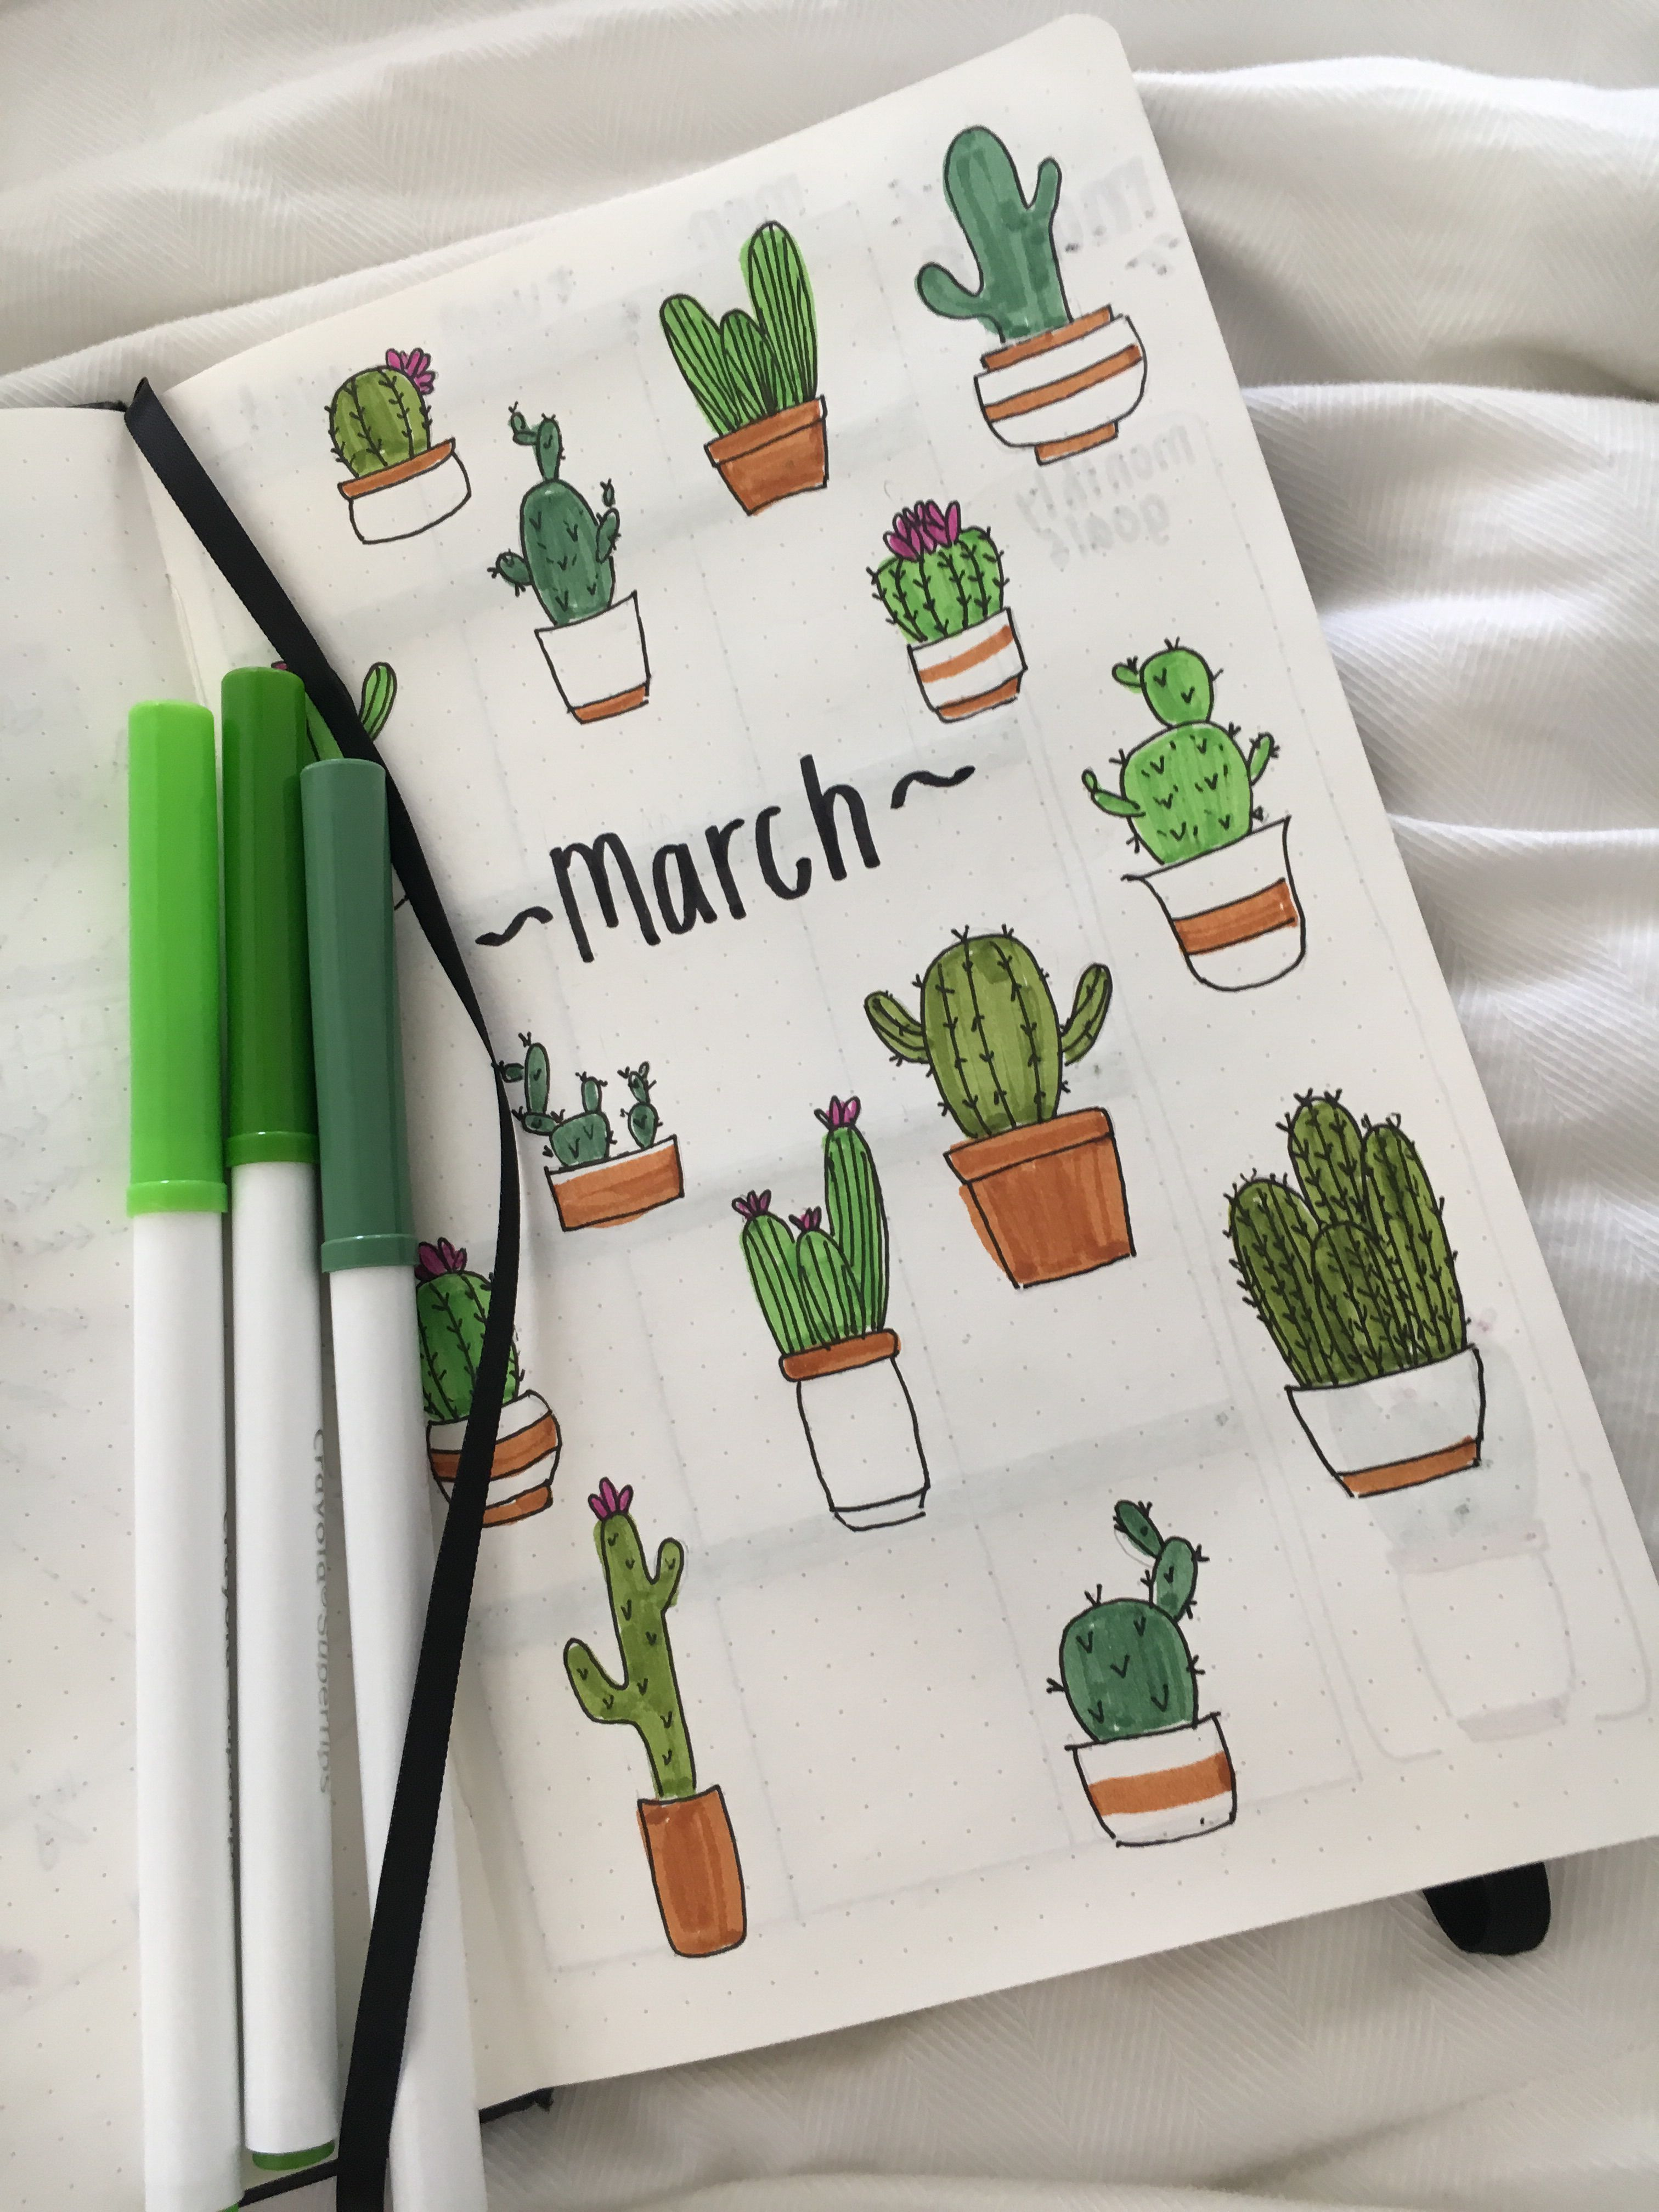 march cover page spread kalender pinterest ノート デザイン